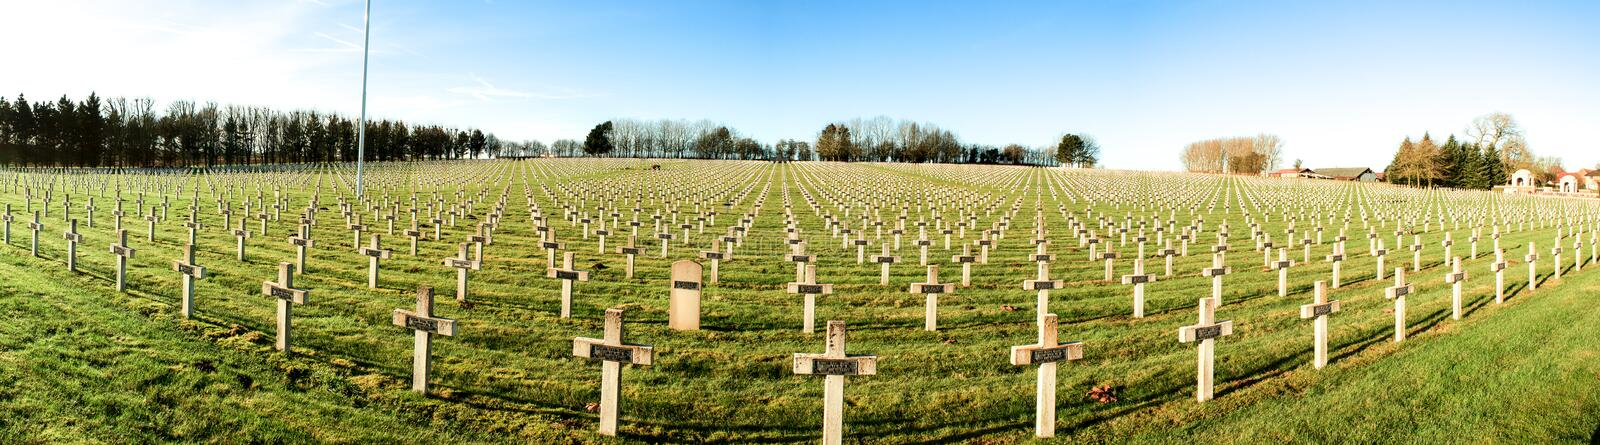 Panorama cemetery of French soldiers from World War 1 in Targette. royalty free stock photography